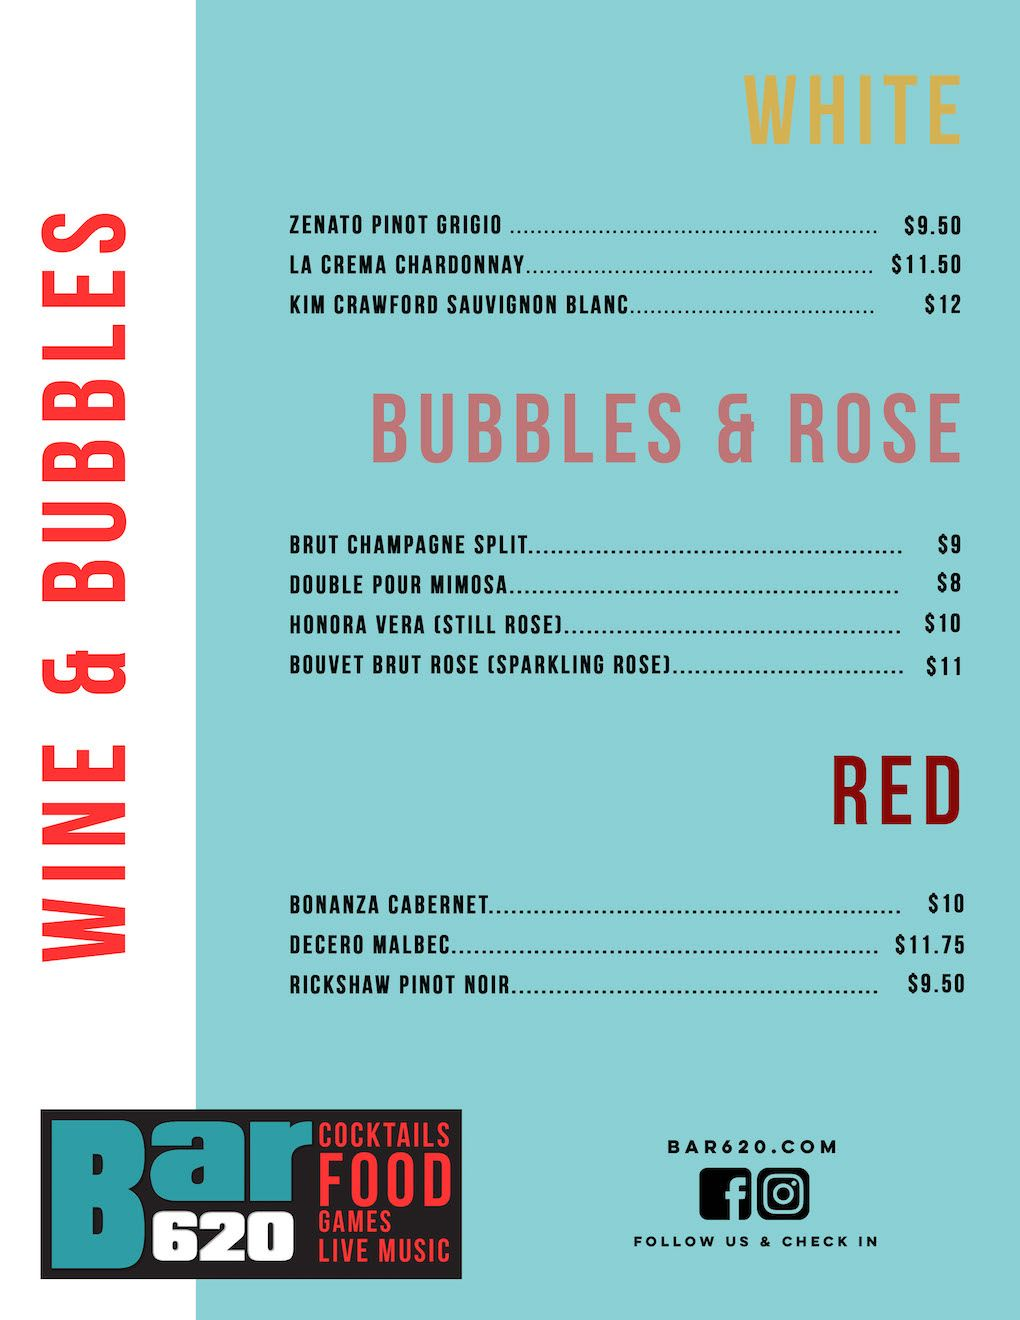 Bar-620-Wine-Menu.jpeg